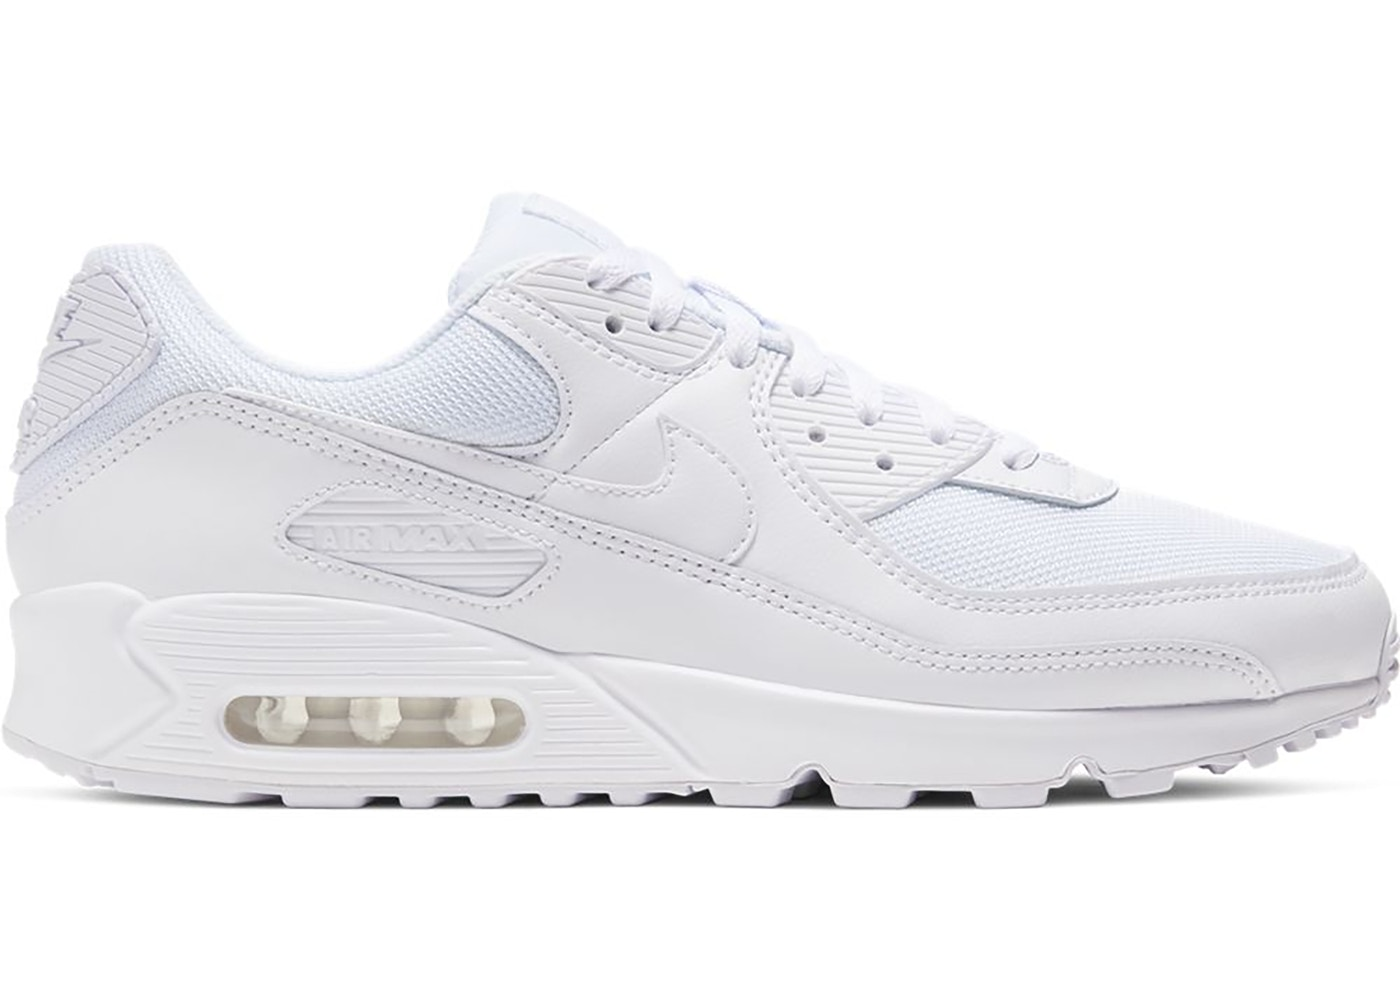 Air Max 90 - All Sizes & Colorways at StockX